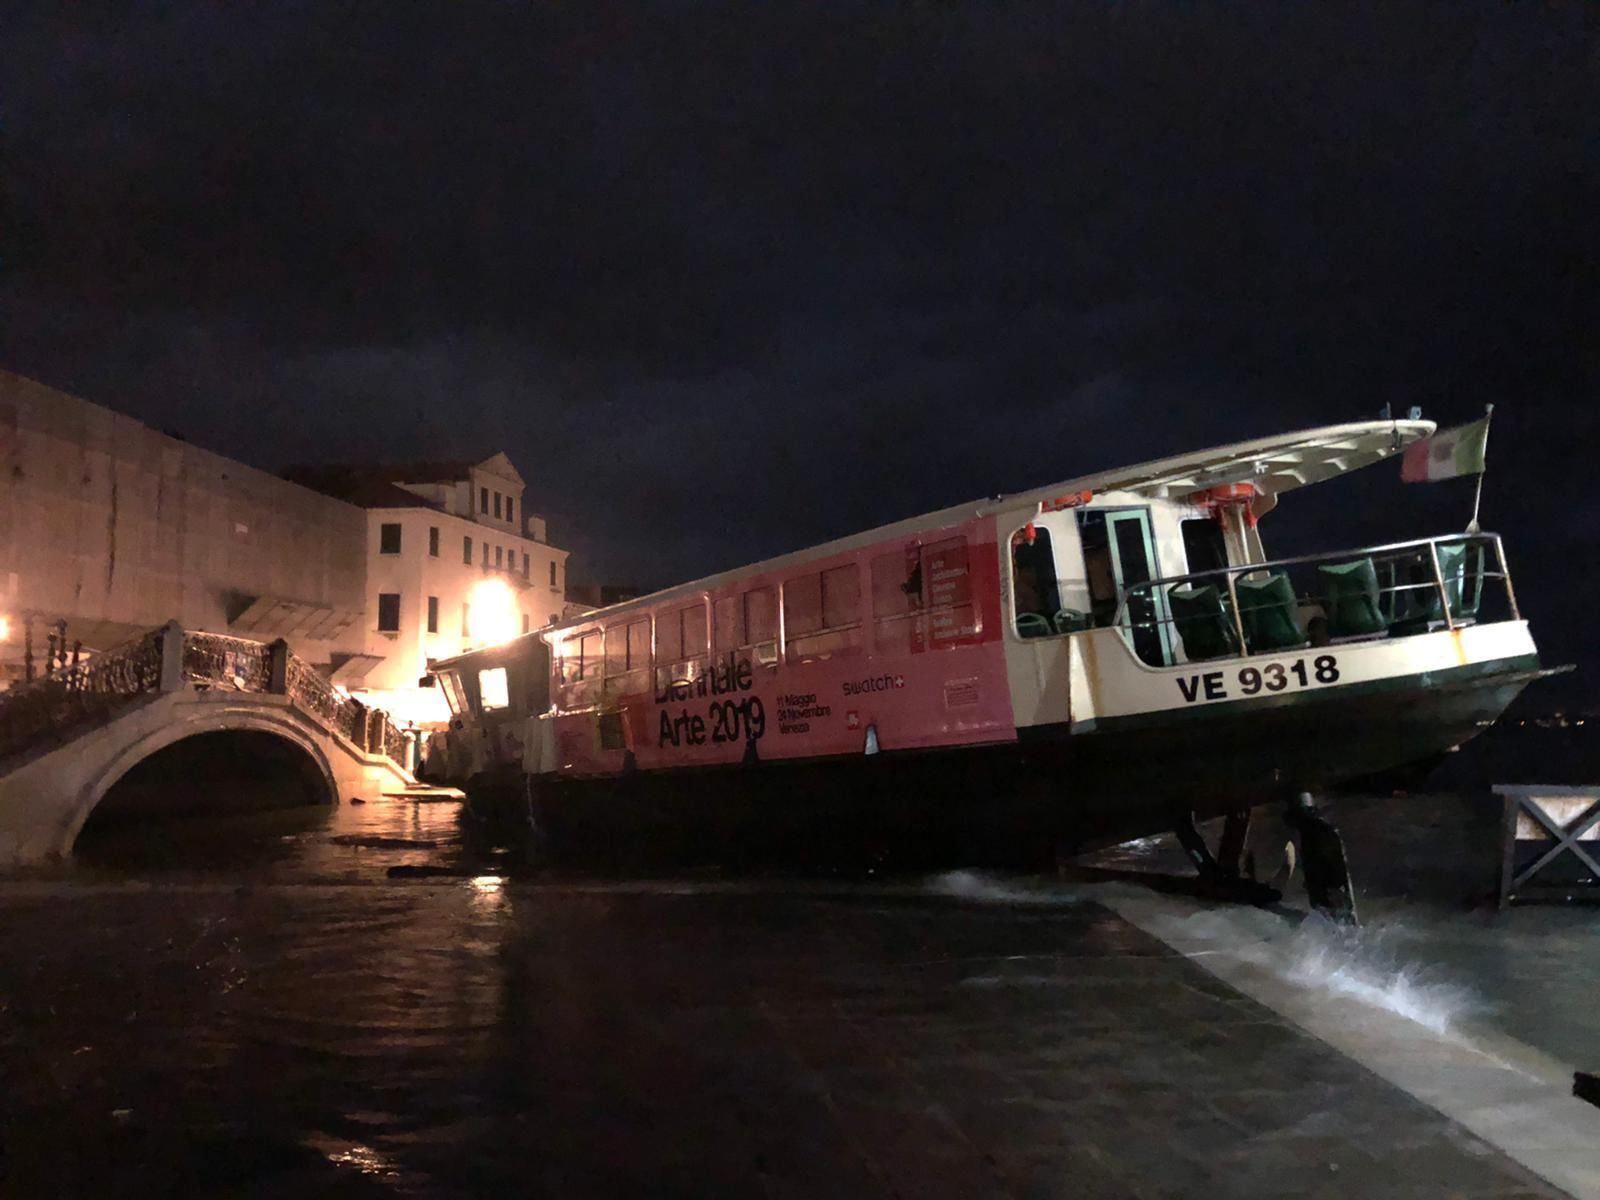 This image made available by the Municipality of Venice shows a ferry stranded on the docks in Venice, Italy, after an exceptional high tide, reaching 1.87 meters above sea level on Tuesday, Nov. 12, 2019.{ } (Venice Municipality via AP)